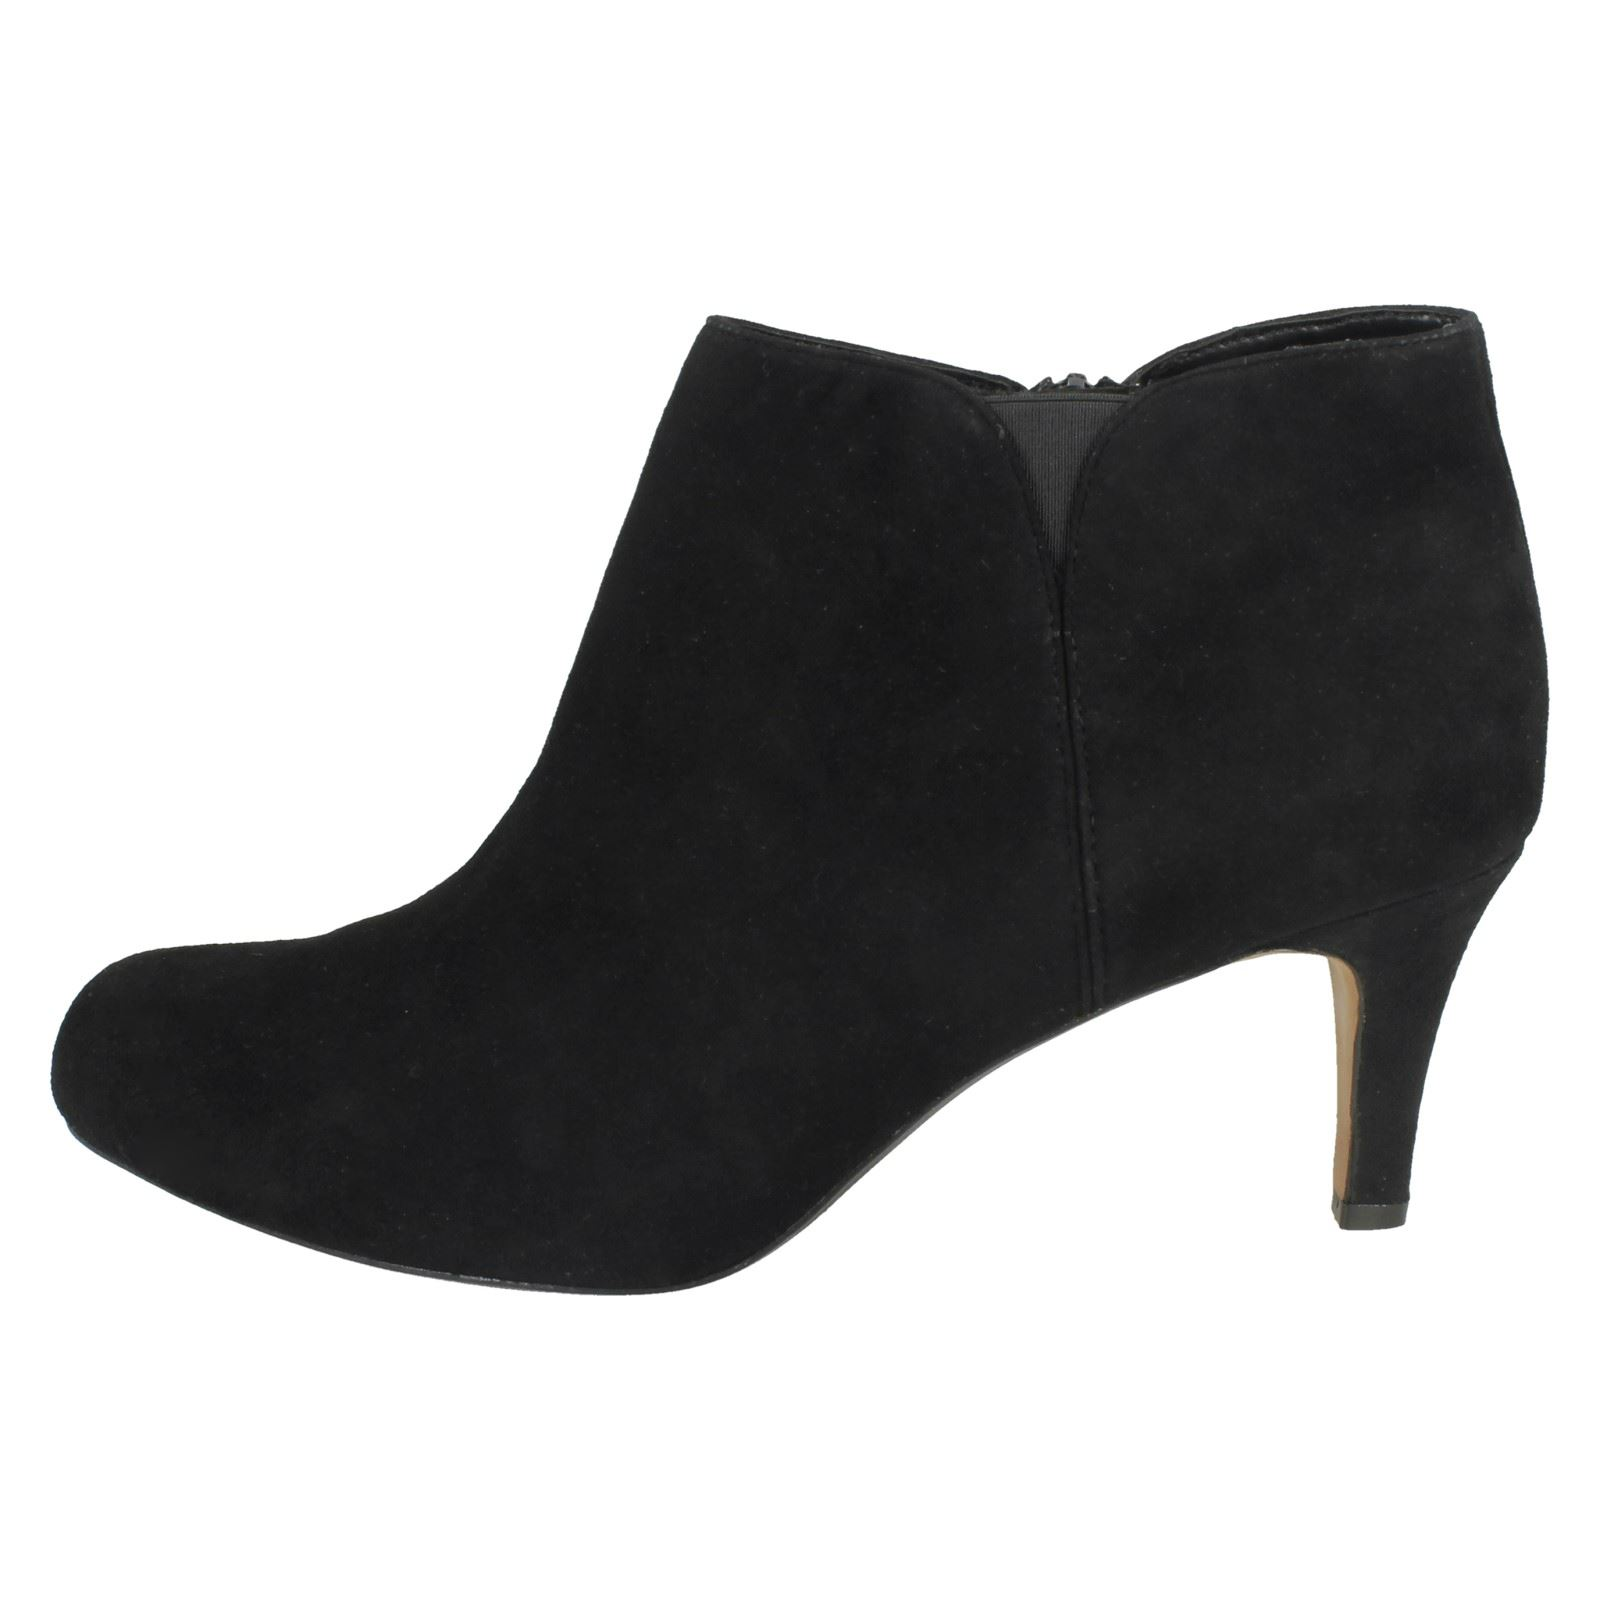 Ankle Clarks Heeled Arista Black Inside Paige Leather Cushioned Zip Boots Suede suede Ladies OnwH0qRH